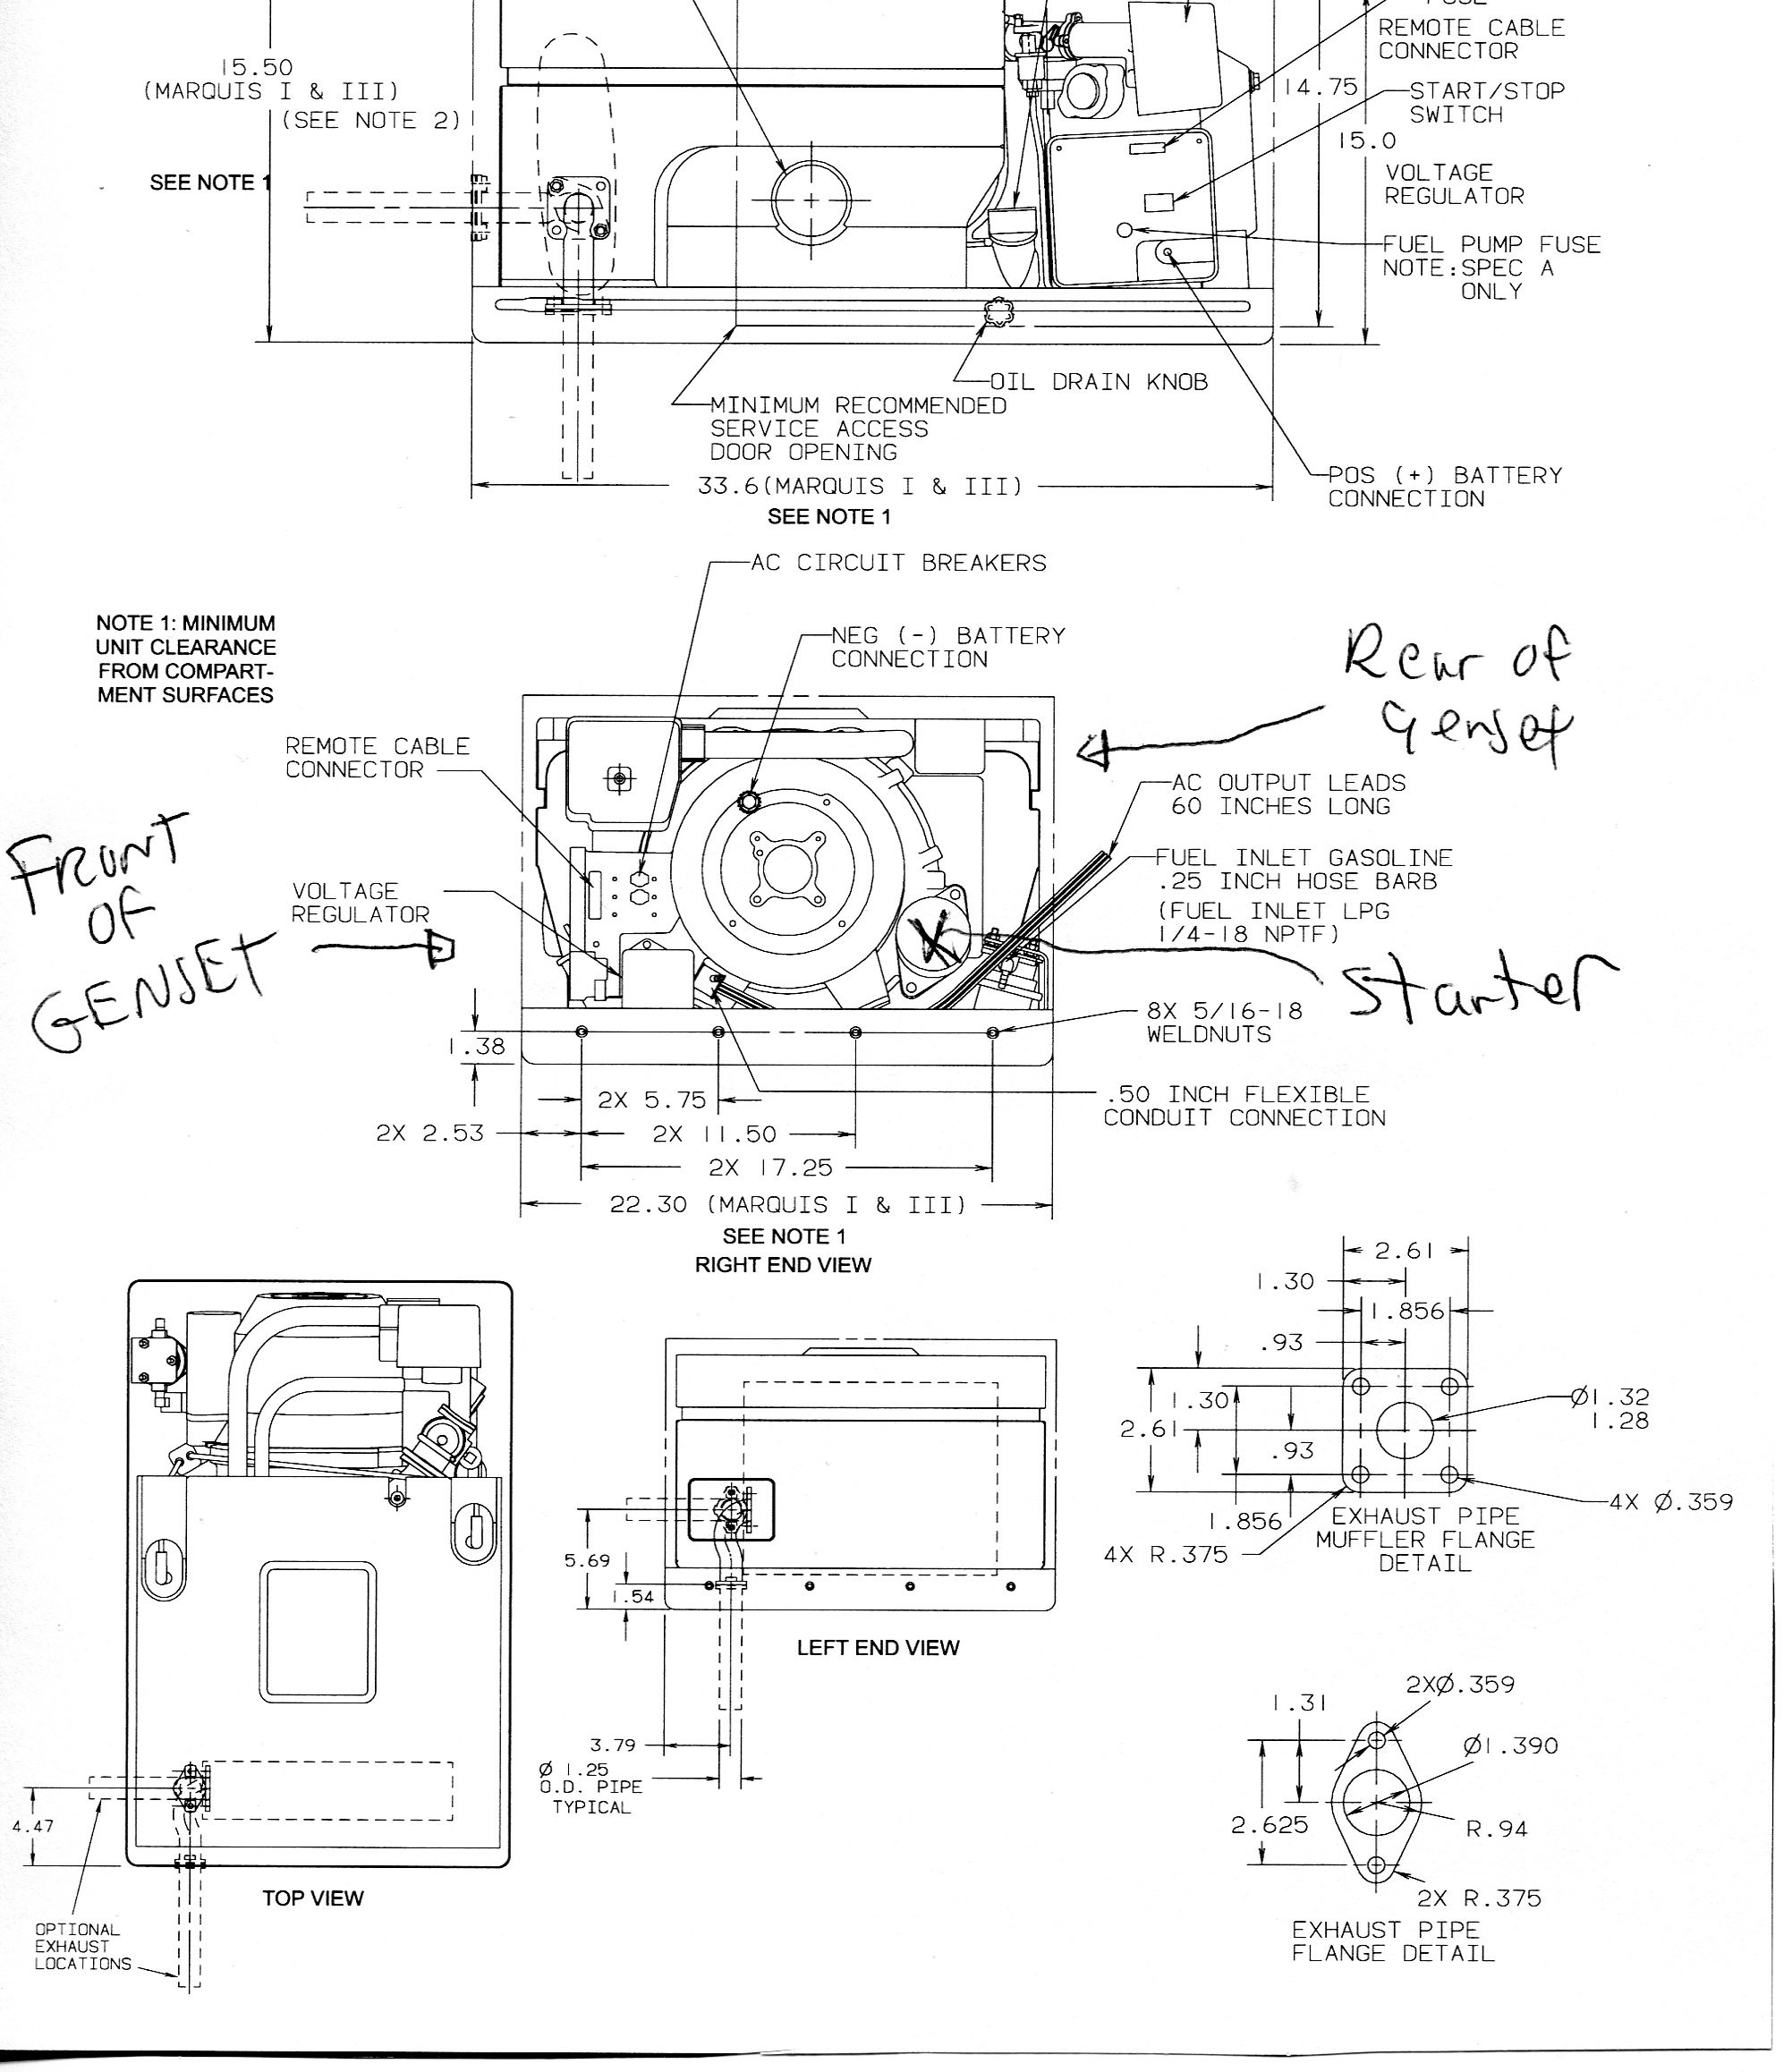 Electrical Drawing at GetDrawings com | Free for personal use